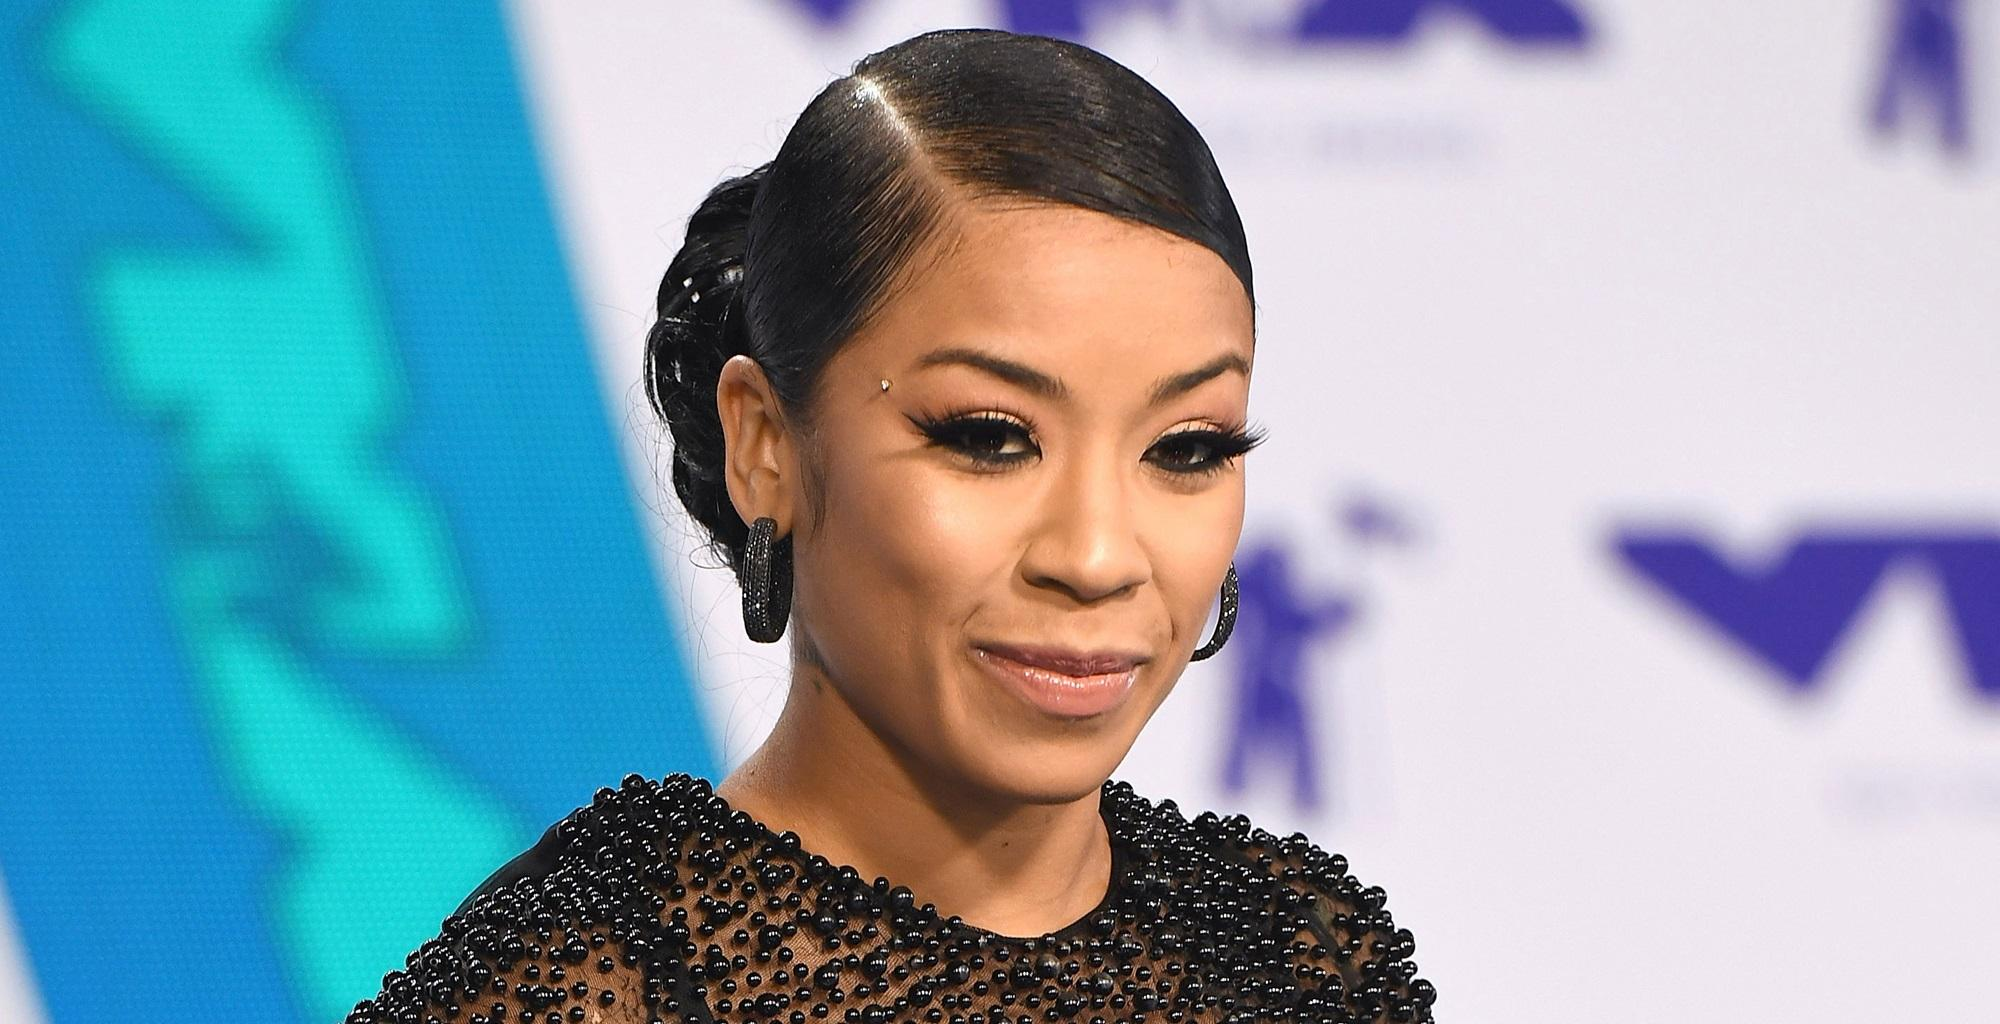 Keyshia Cole Gives A Glimpse At Her Post-Pregnancy Body In New Photo While Showing Love And Support To Mary J. Blige